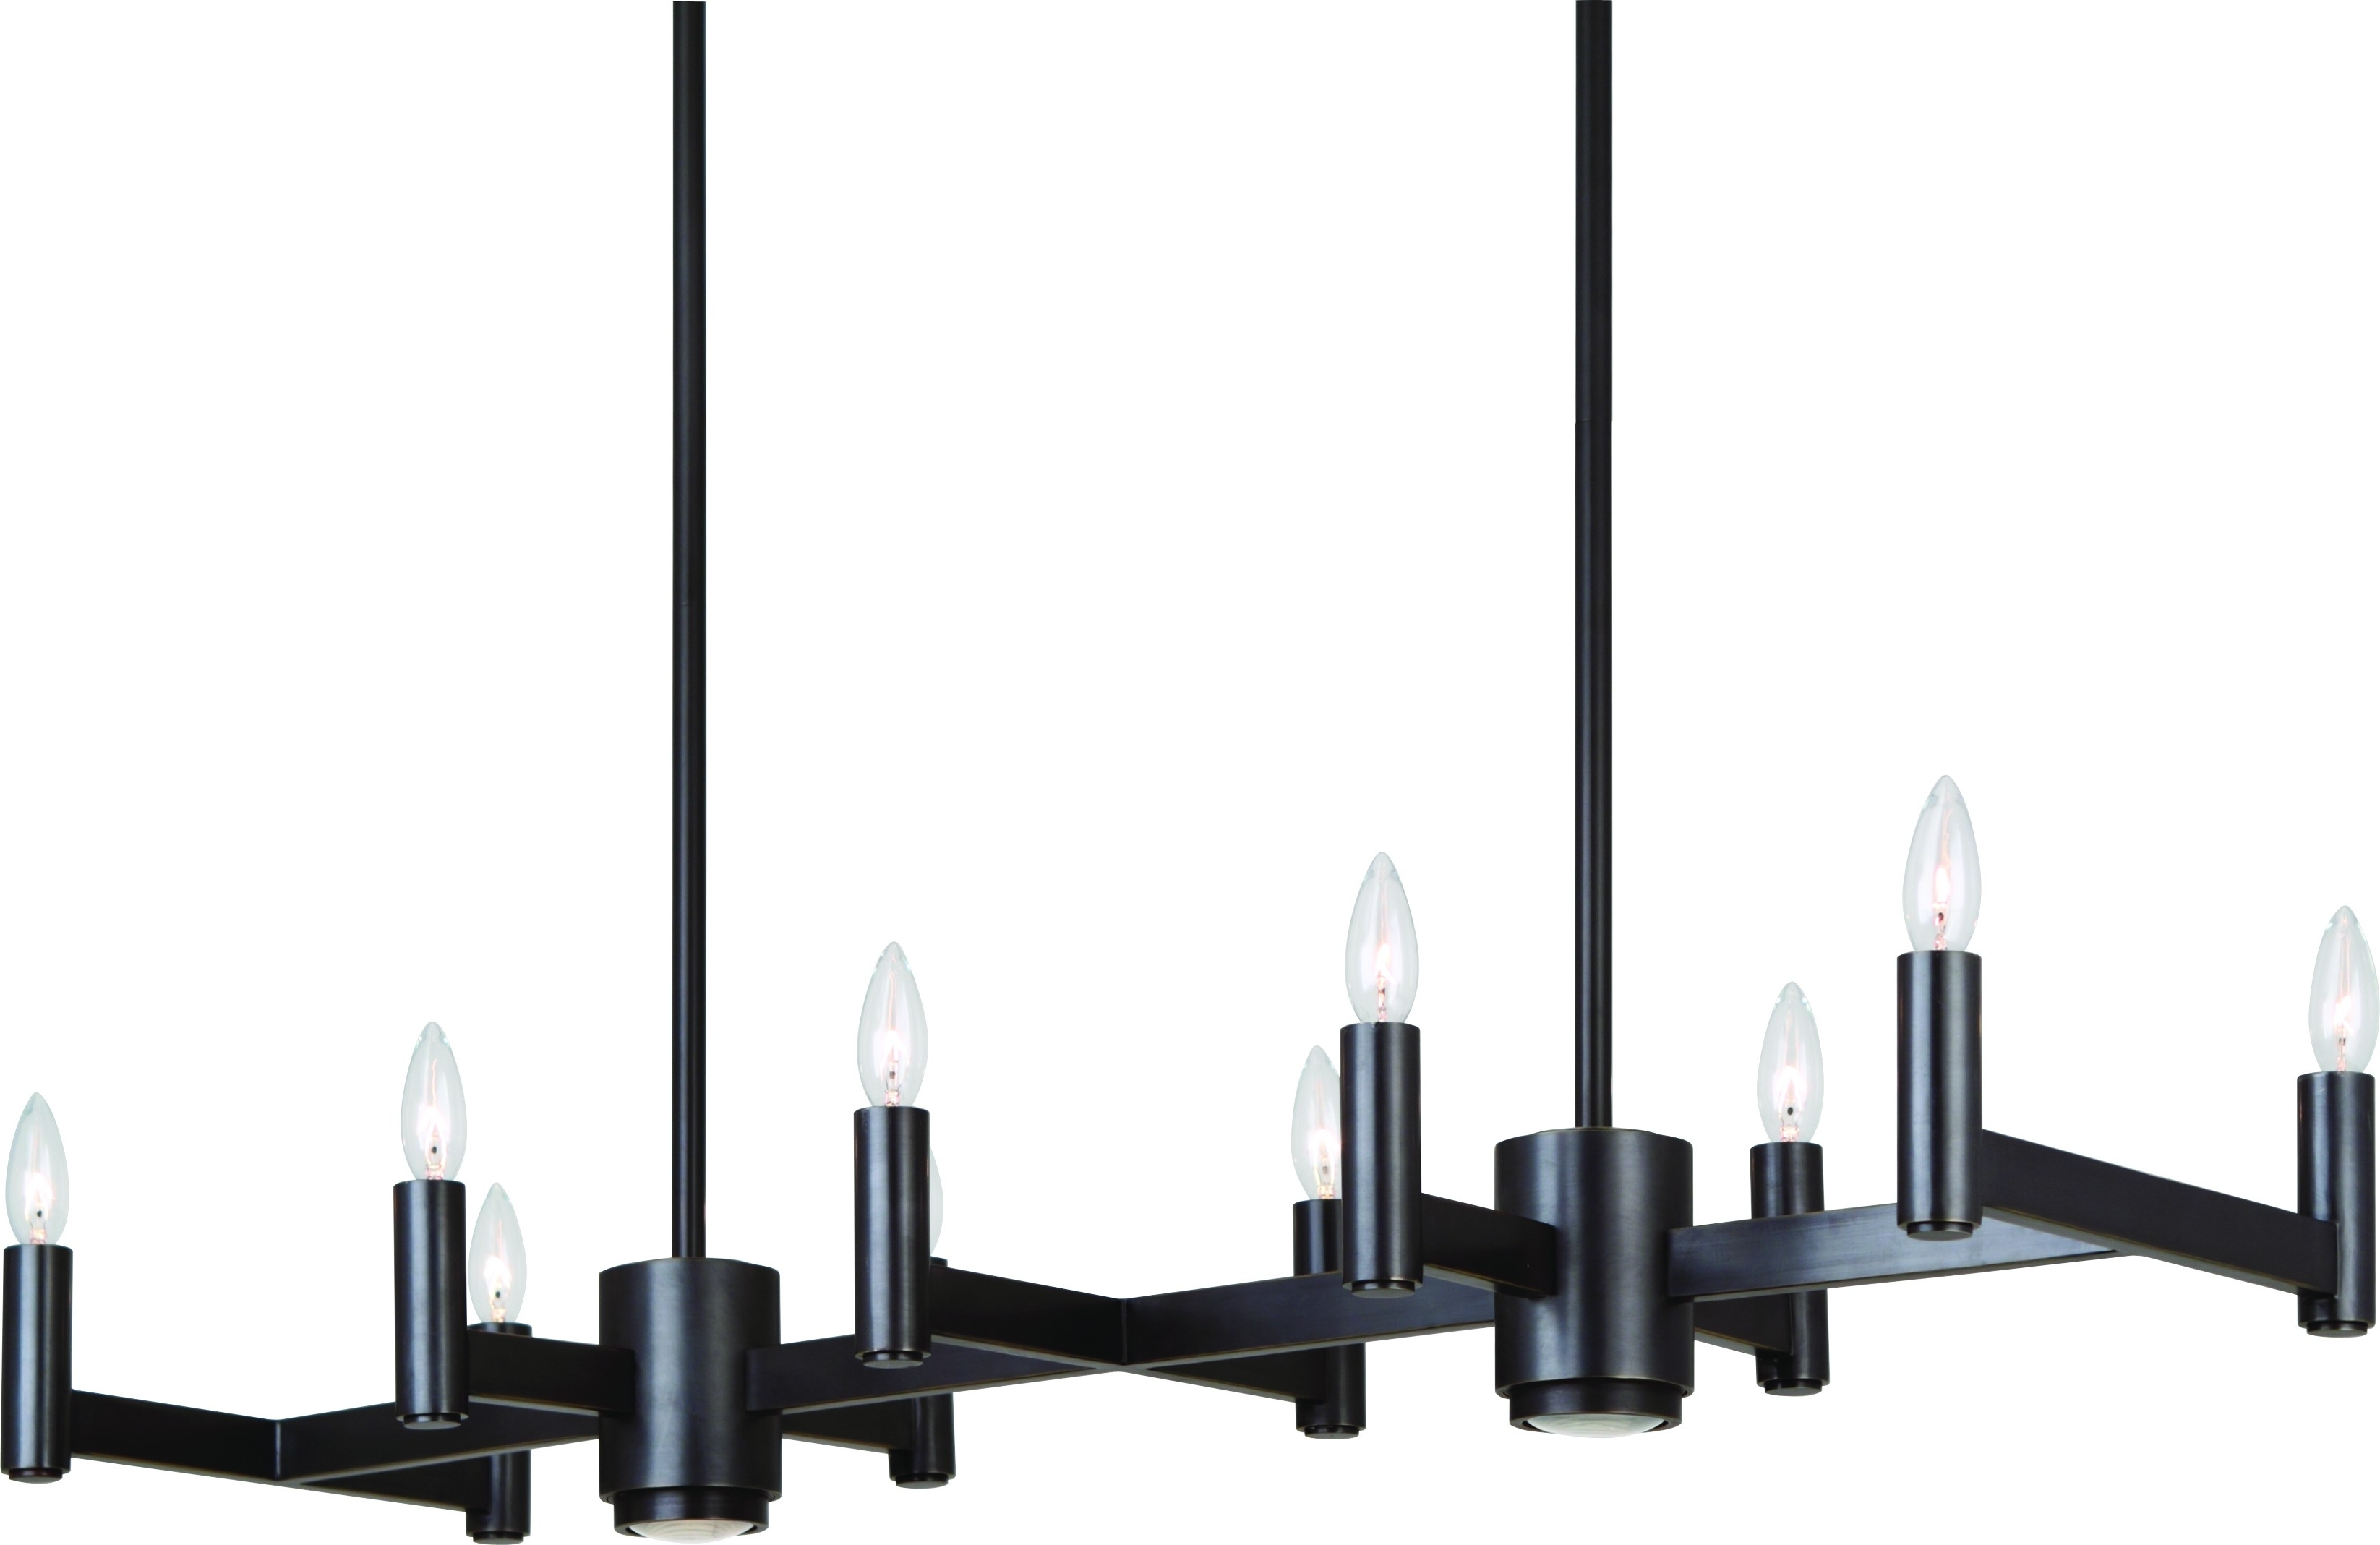 Modern Black Chandelier Pertaining To Fashionable Hanging Rectangular Modern Black Wrought Iron Chandeliers With Lamp (View 11 of 20)